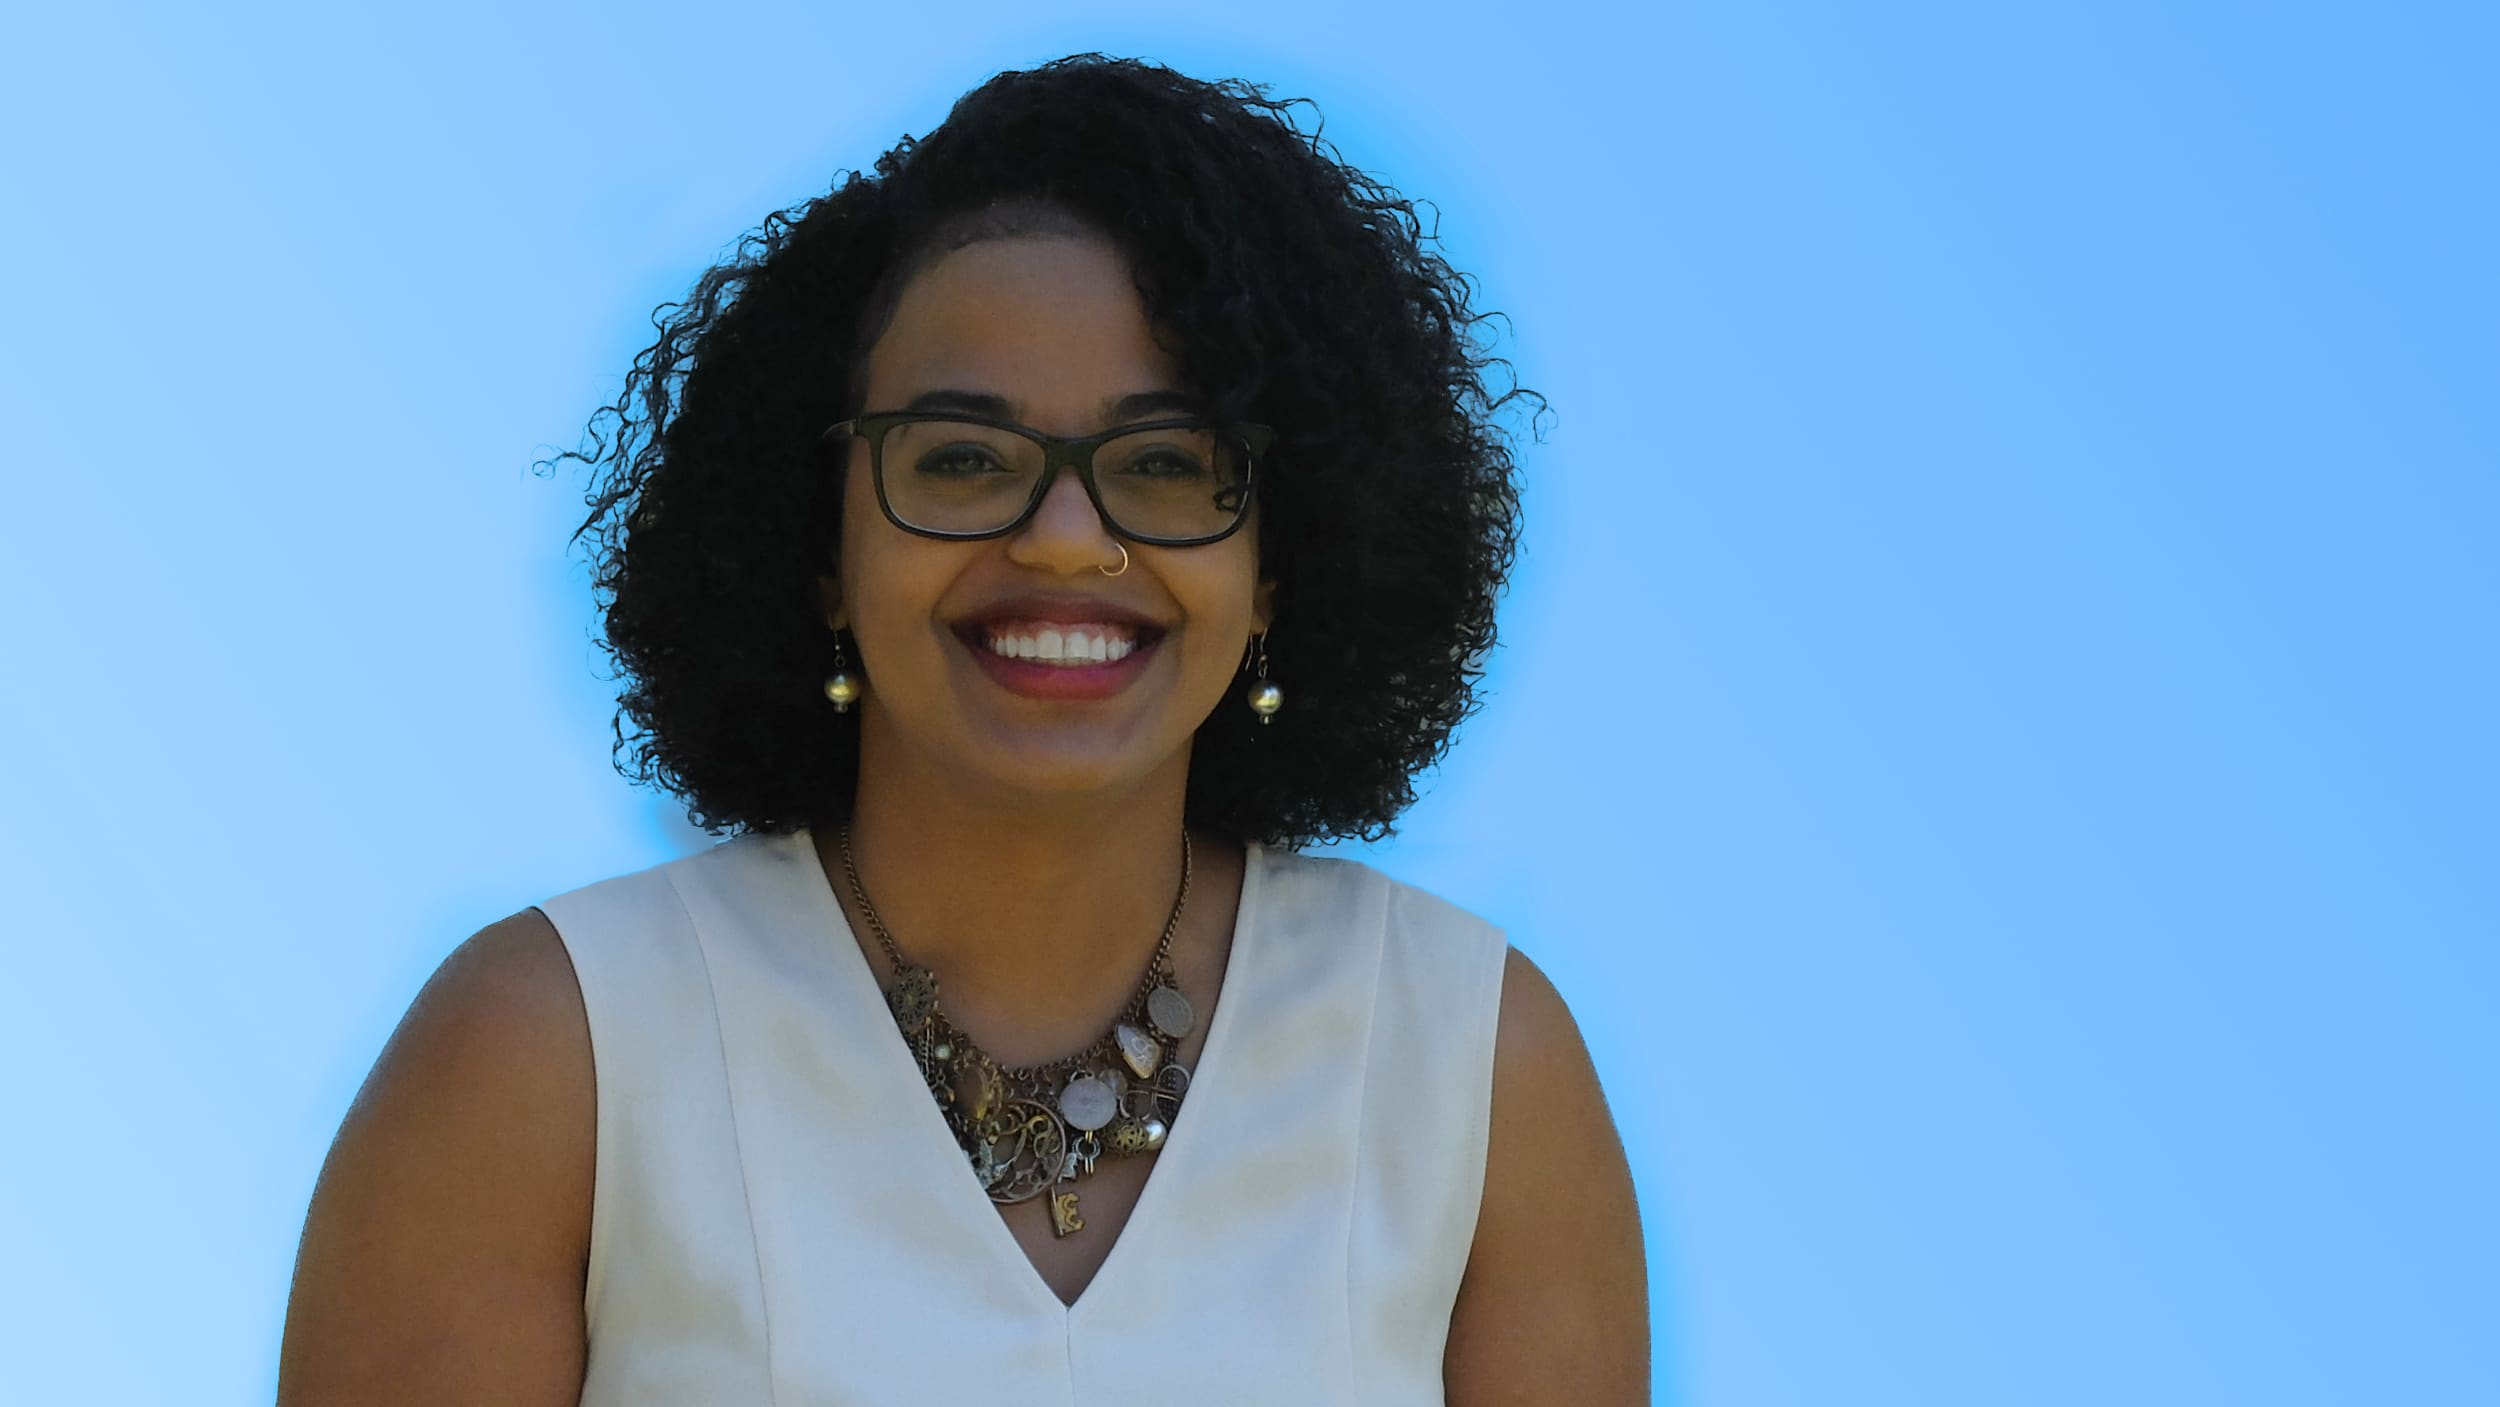 Photo for State Representative Leonela Felix selected as one of nation's outstanding rising leaders